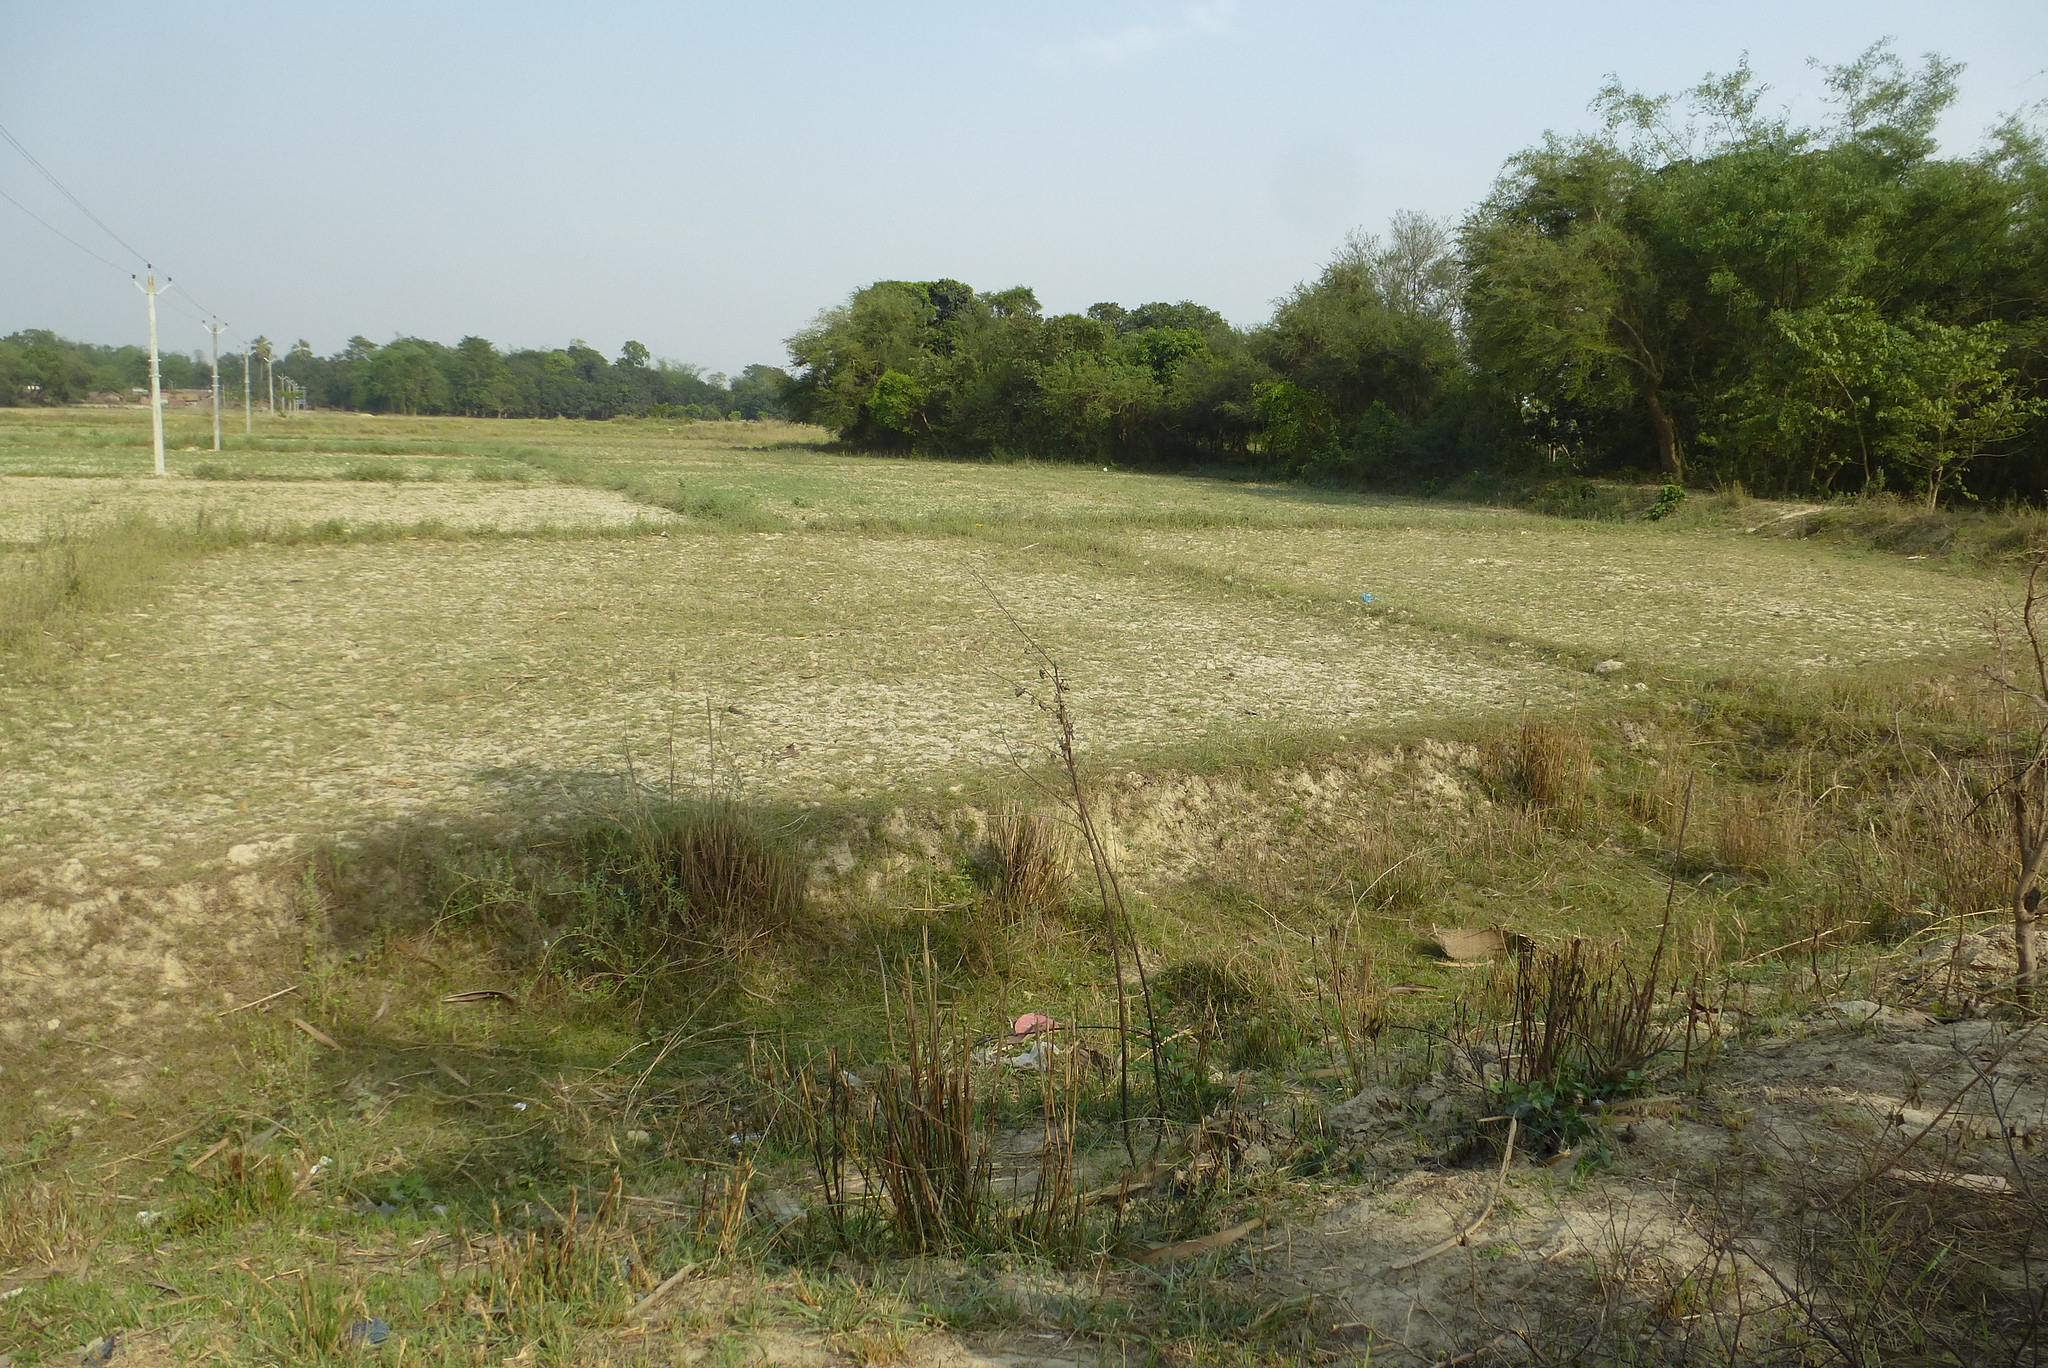 When Kamla ceased to flow through their village, the farmers' source of irrigation dried up. These fields have lain fallow for the last five years due to poor rain.